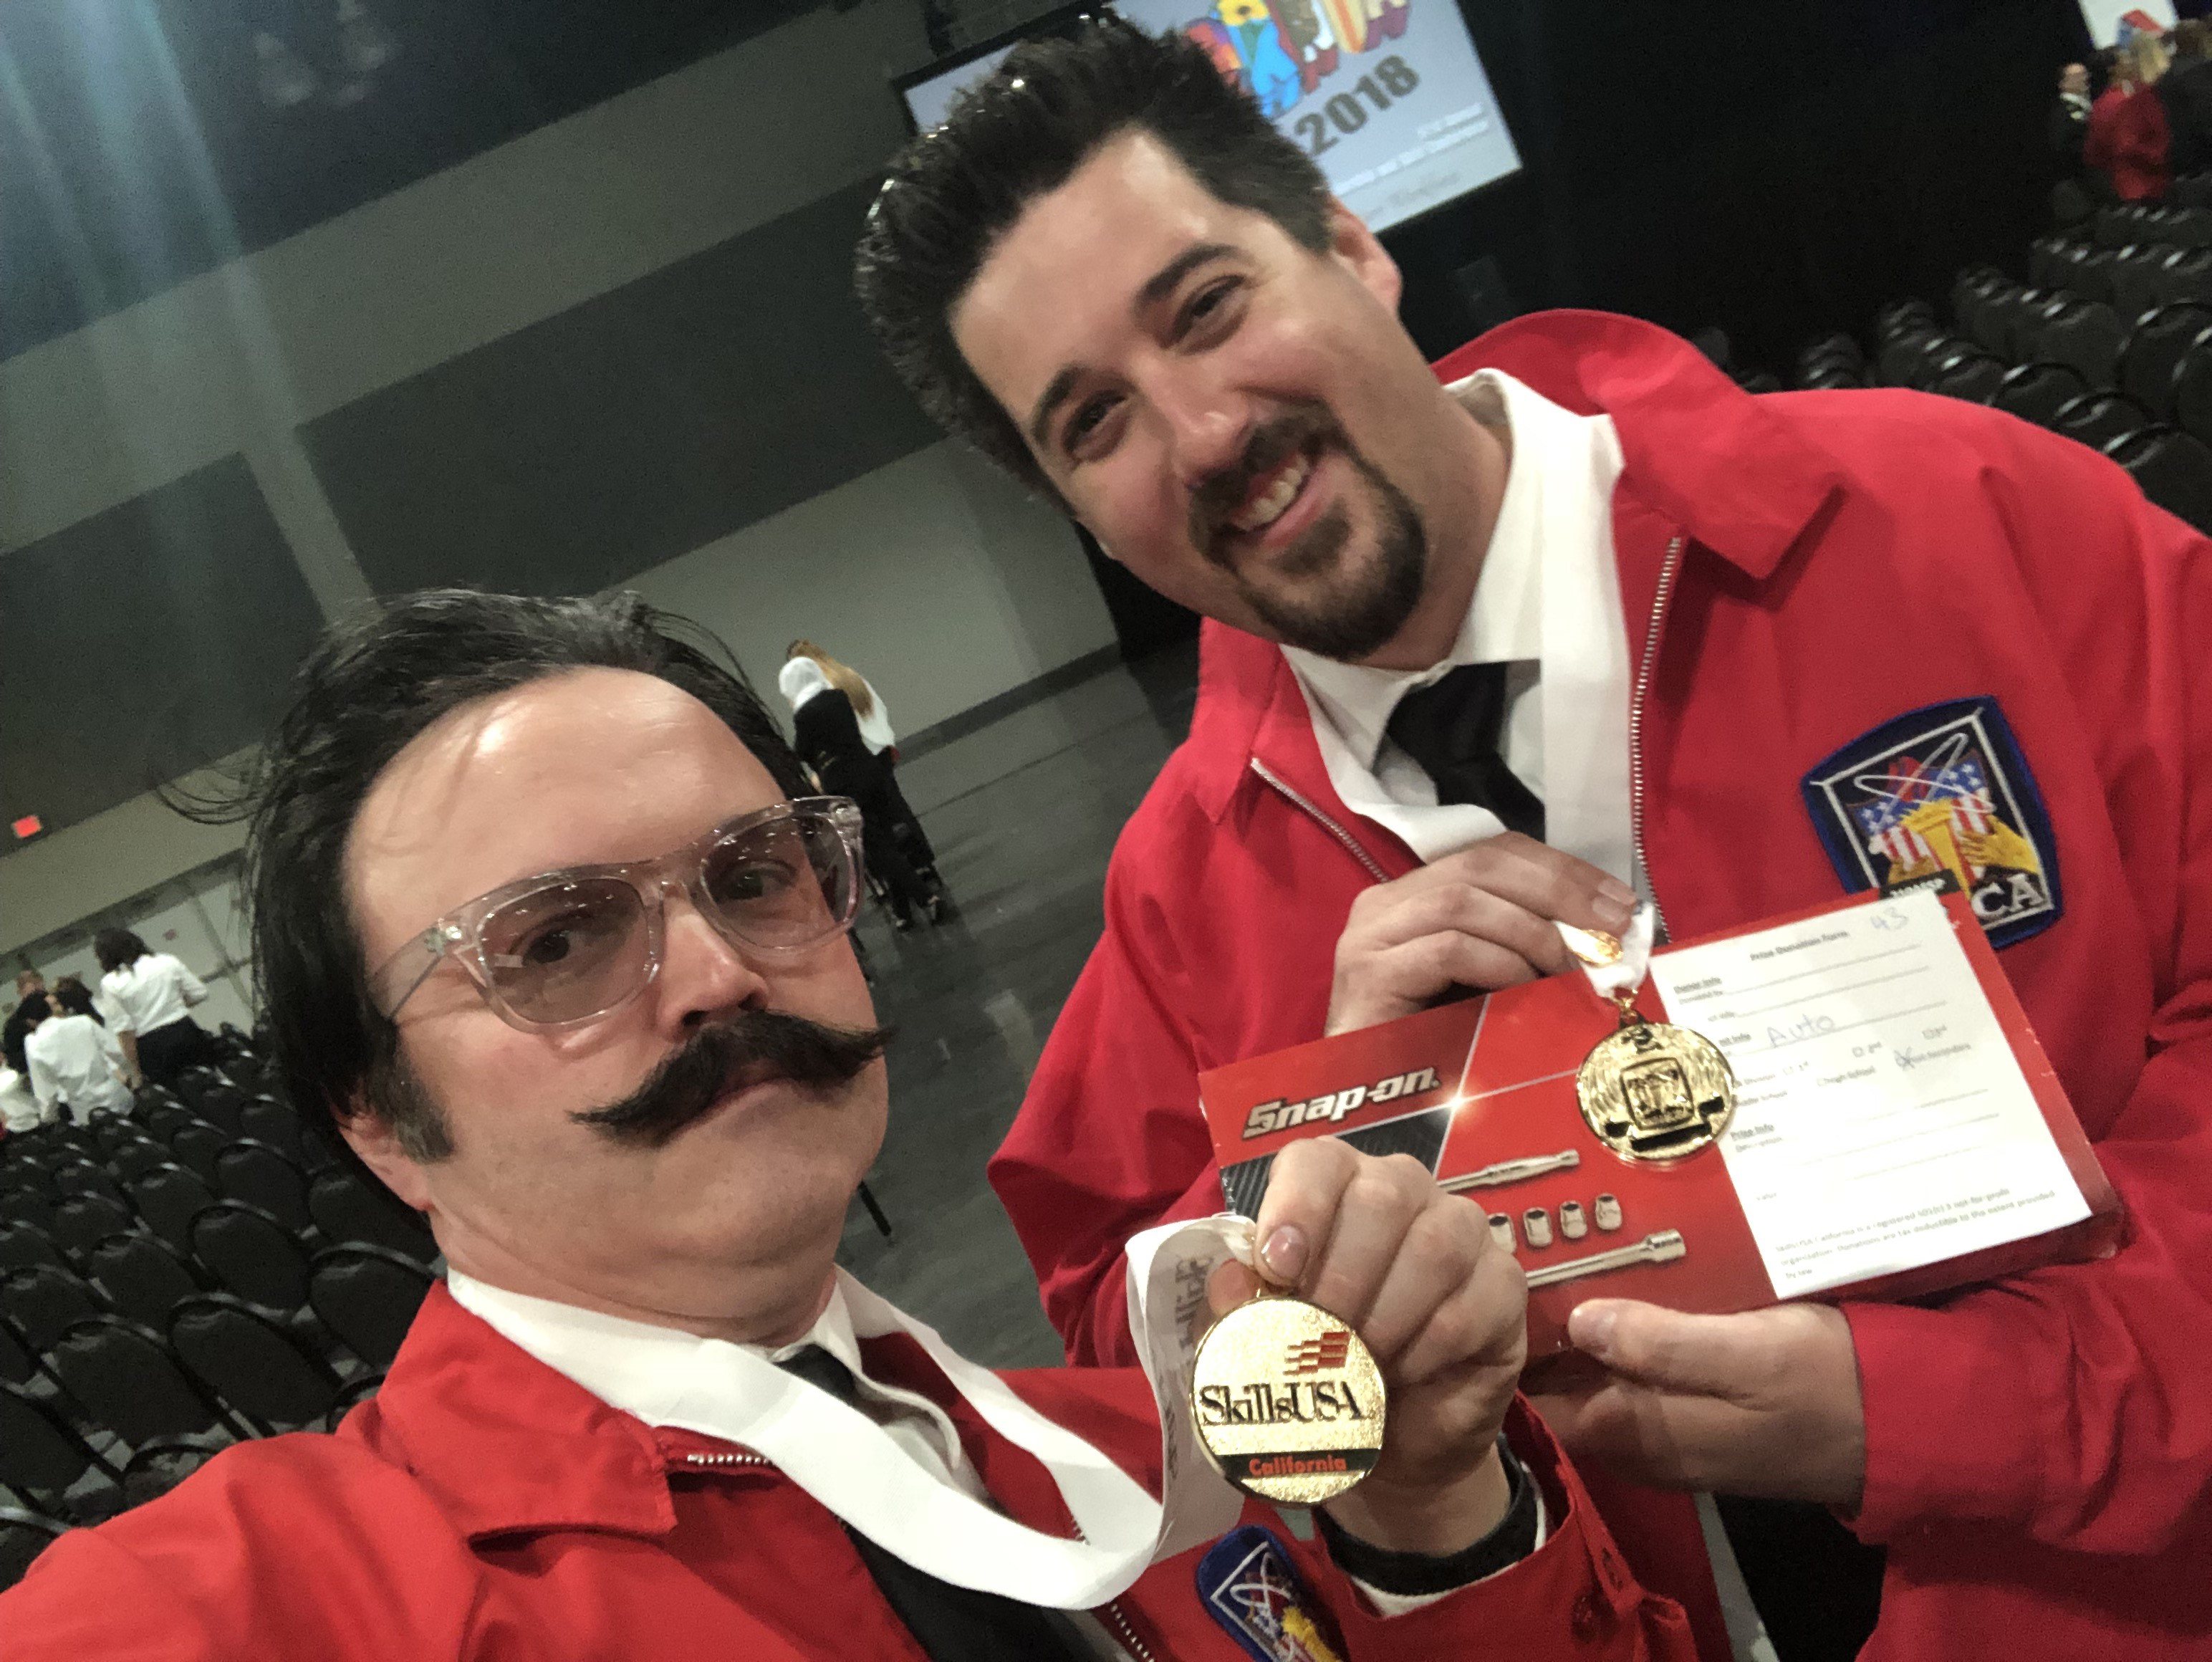 Shane Gallagher and Associate Professor Dan Bonnema of San Joaquin Delta College pose after Gallagher took gold at the SkillsUSA competition.